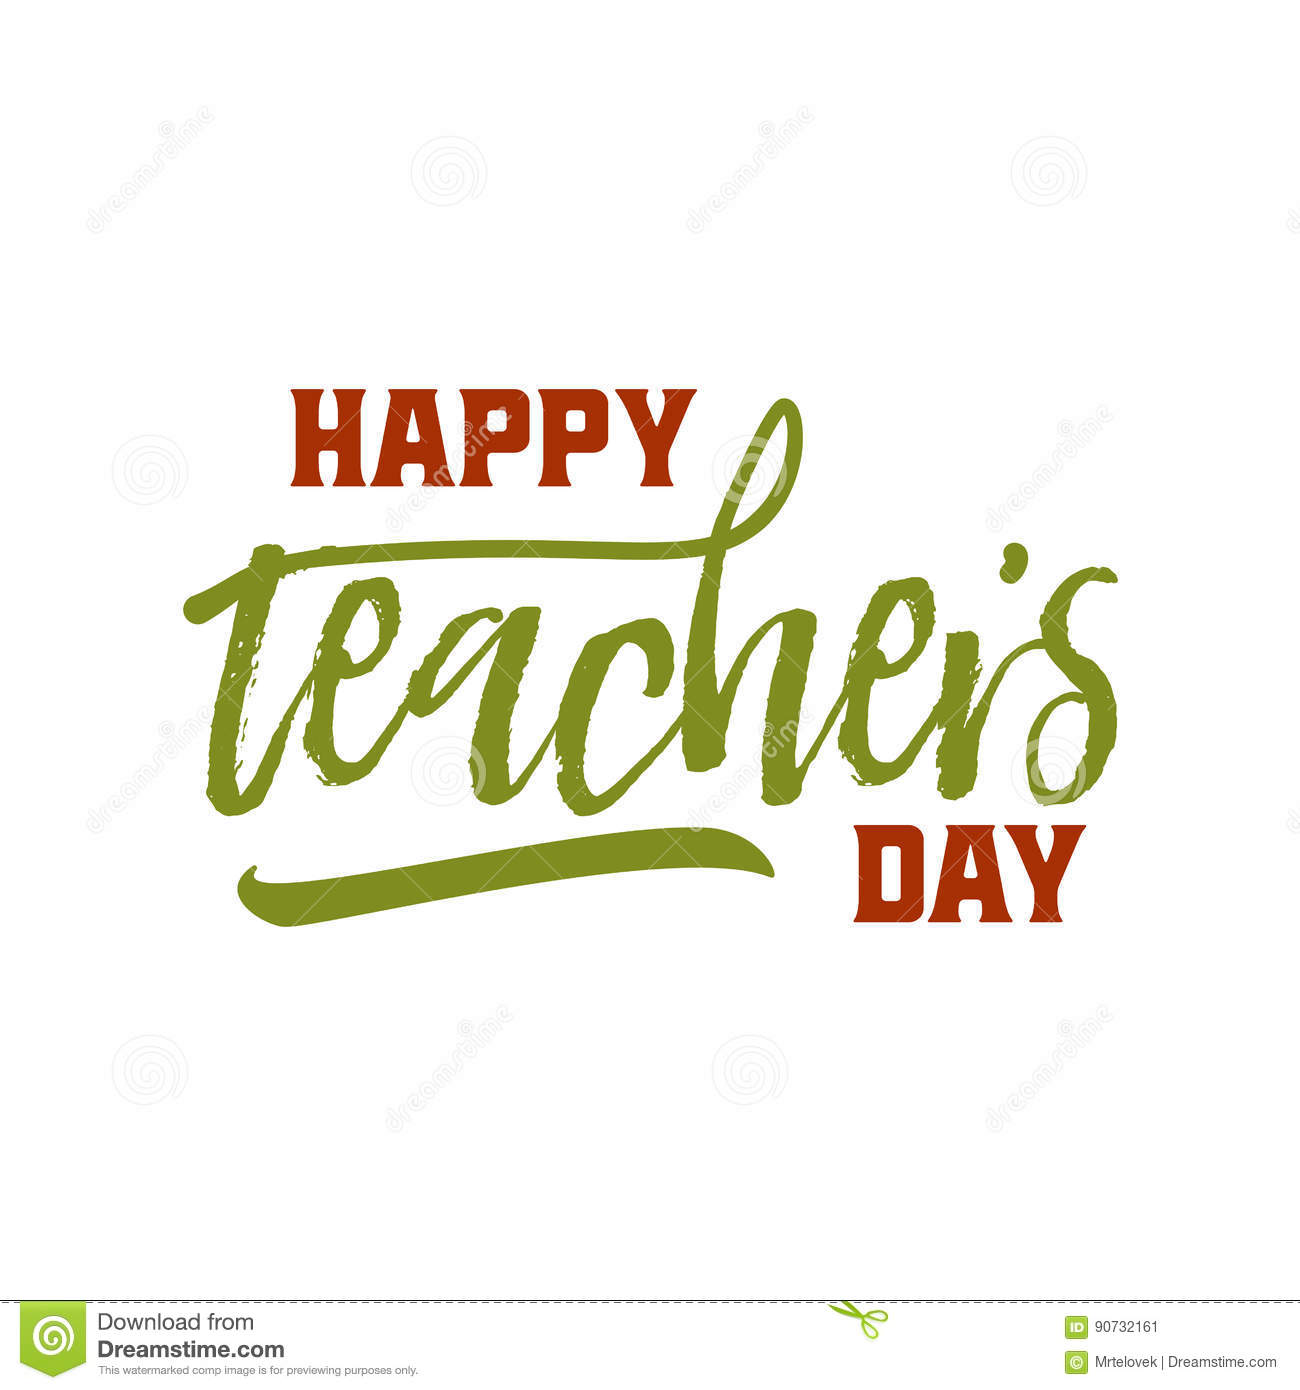 Lettering and calligraphy modern happy teachers day to